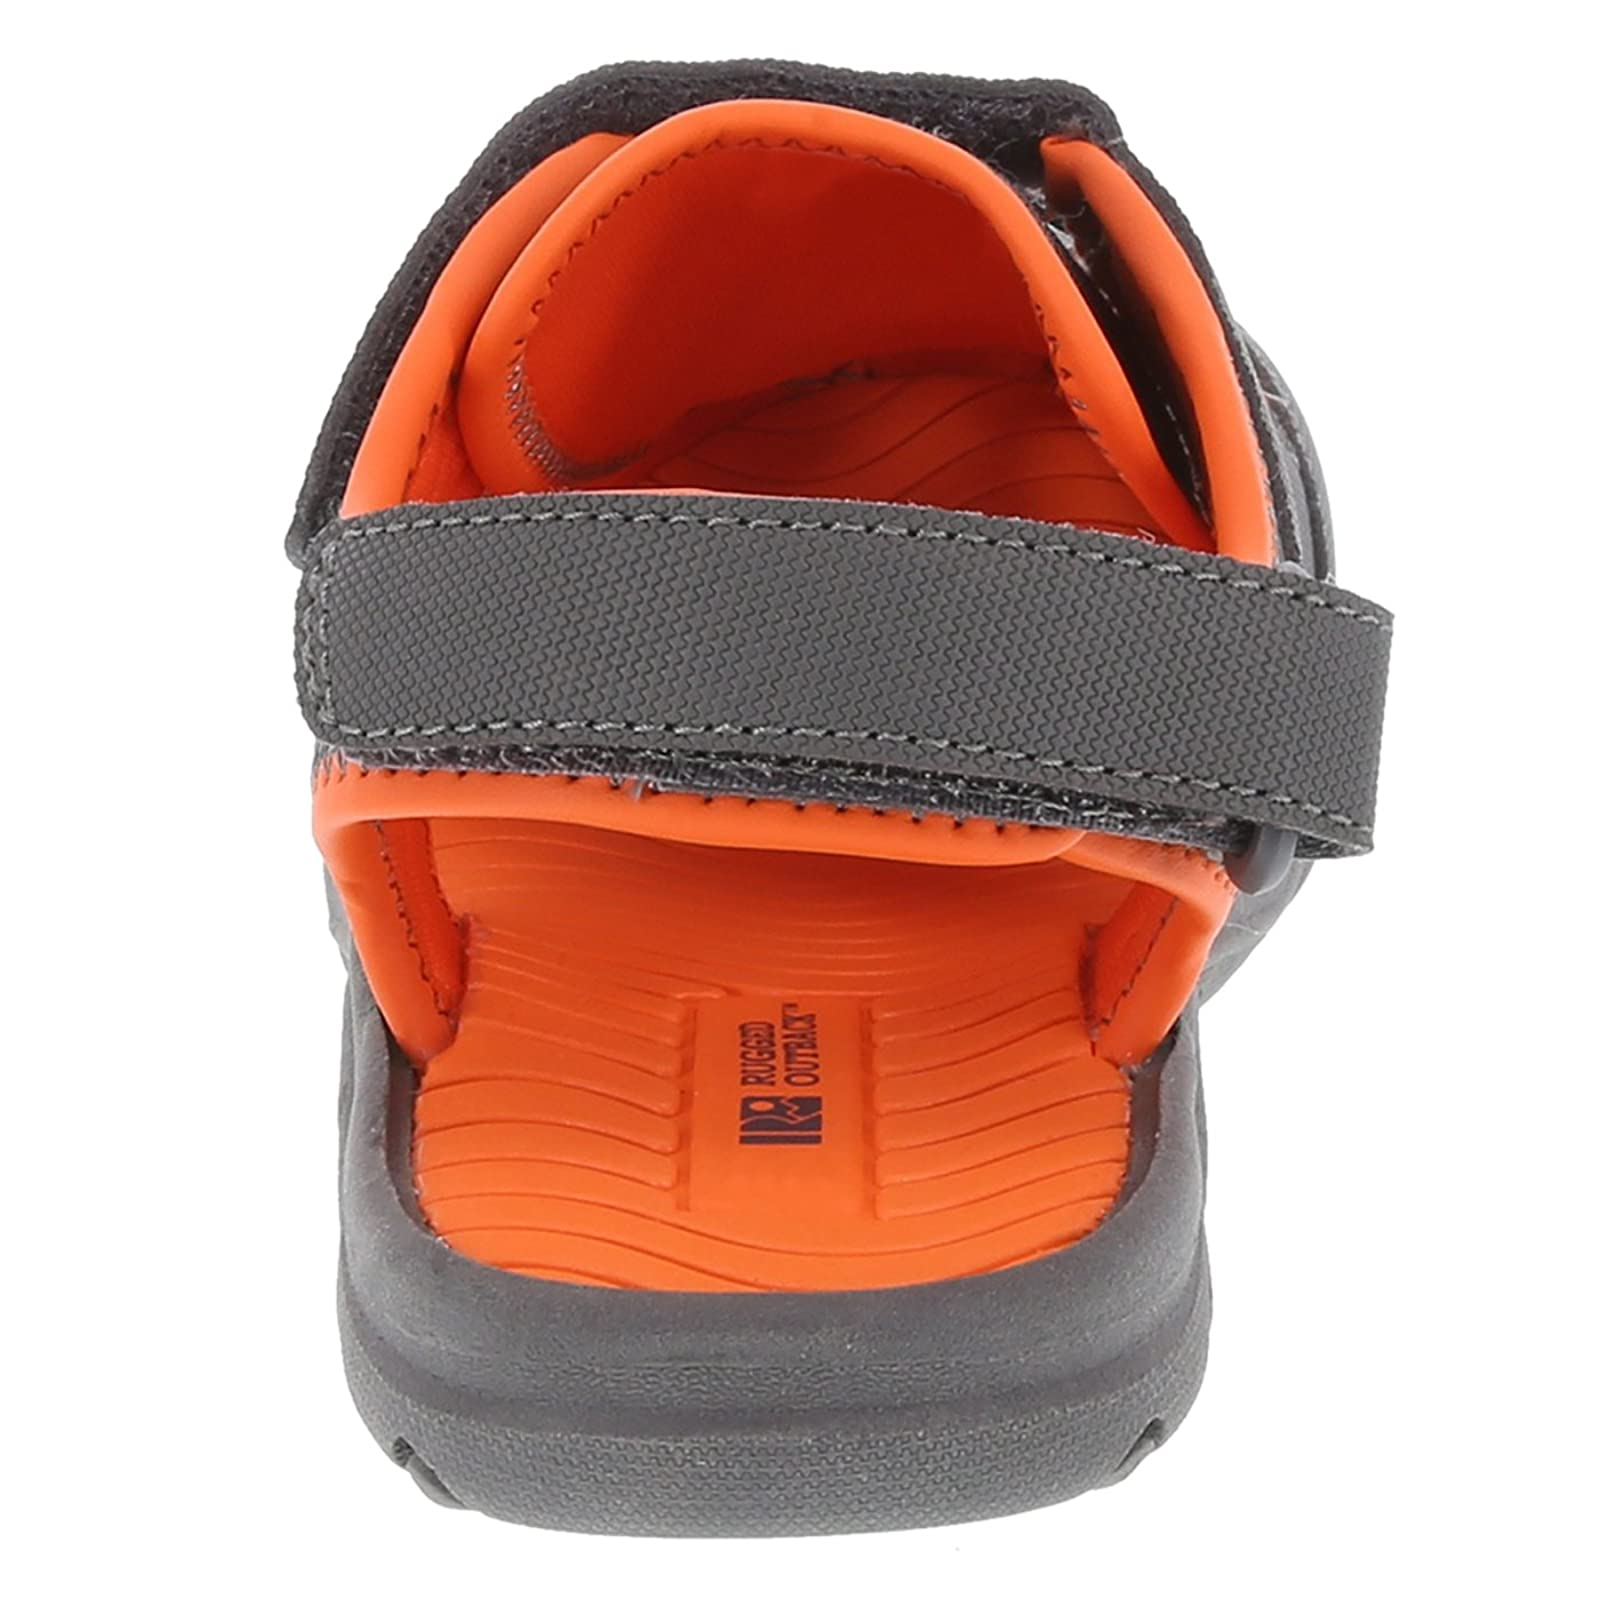 Rugged Outback Boy's Grey Orange Sport 173963130 Grey Orange - 2